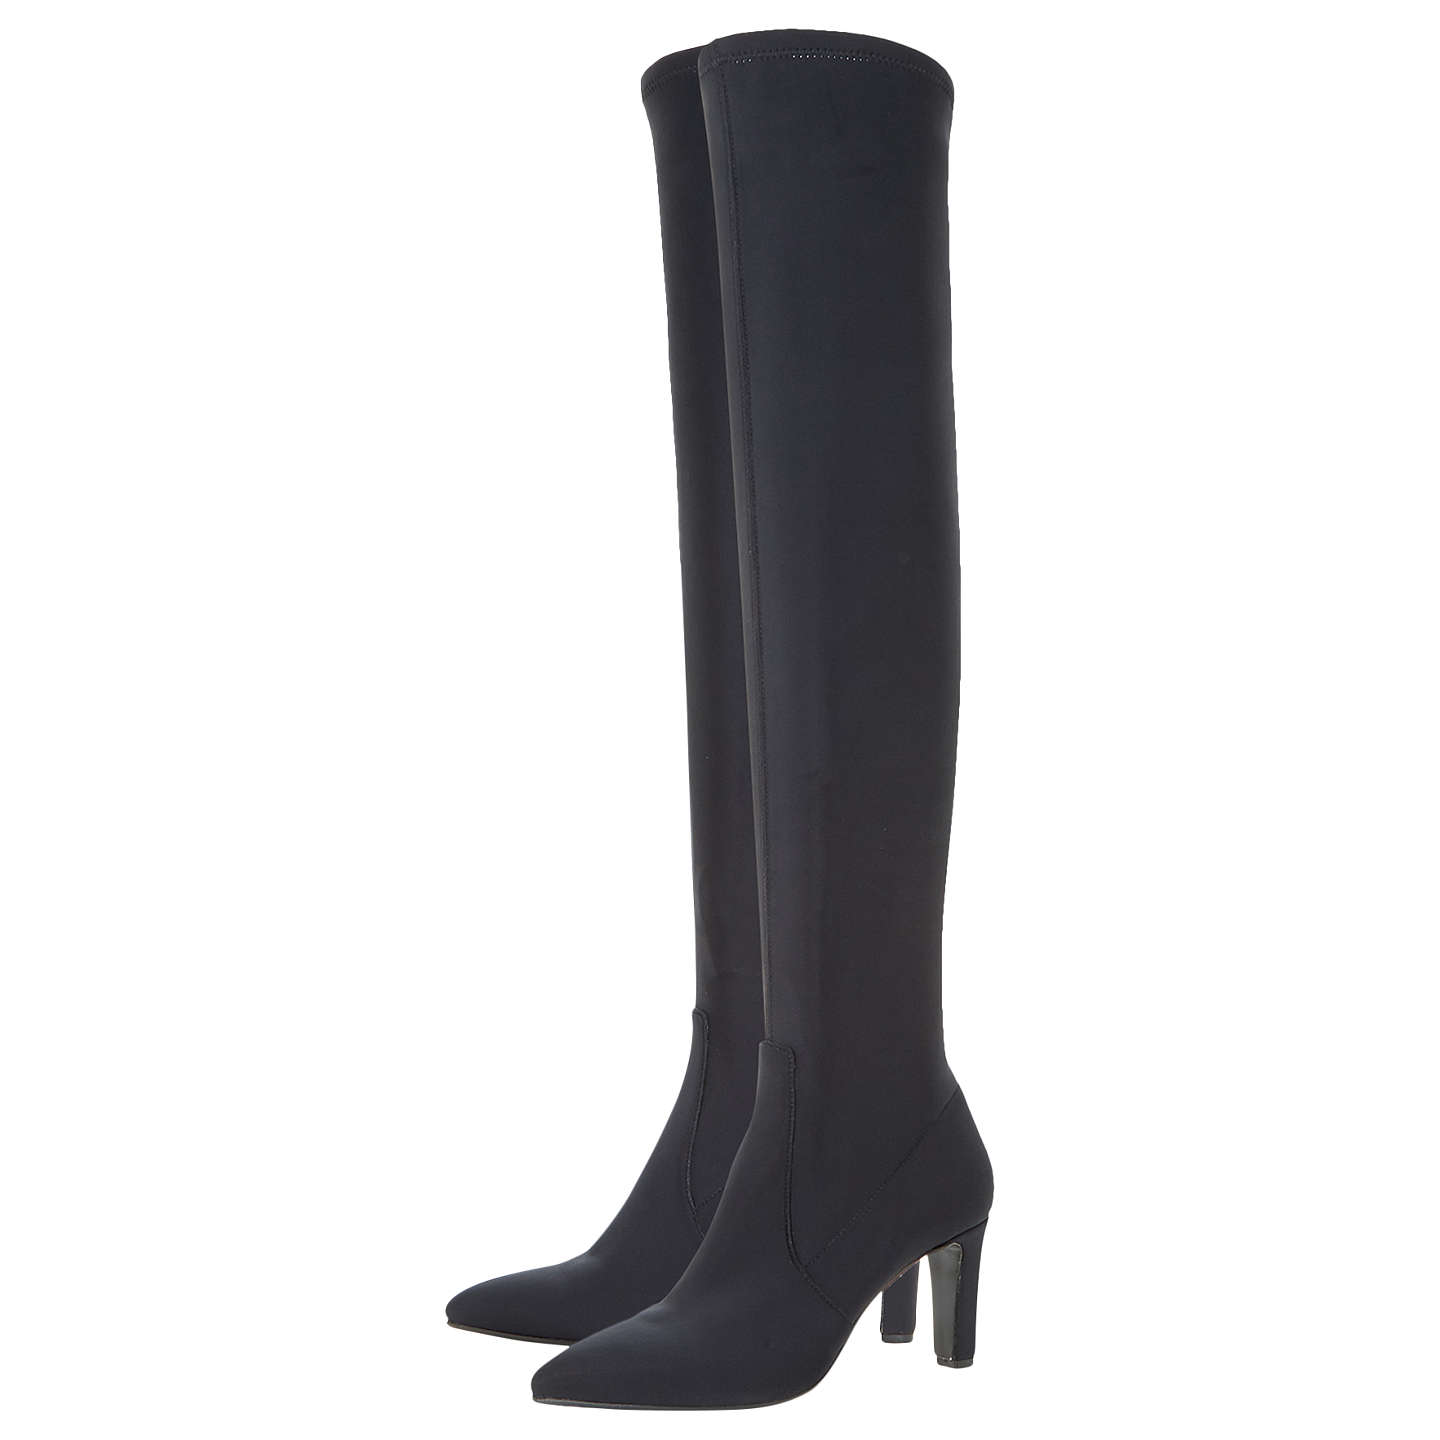 BuyDune Black Stanford Over The Knee Boots, Black, 3 Online at johnlewis.com